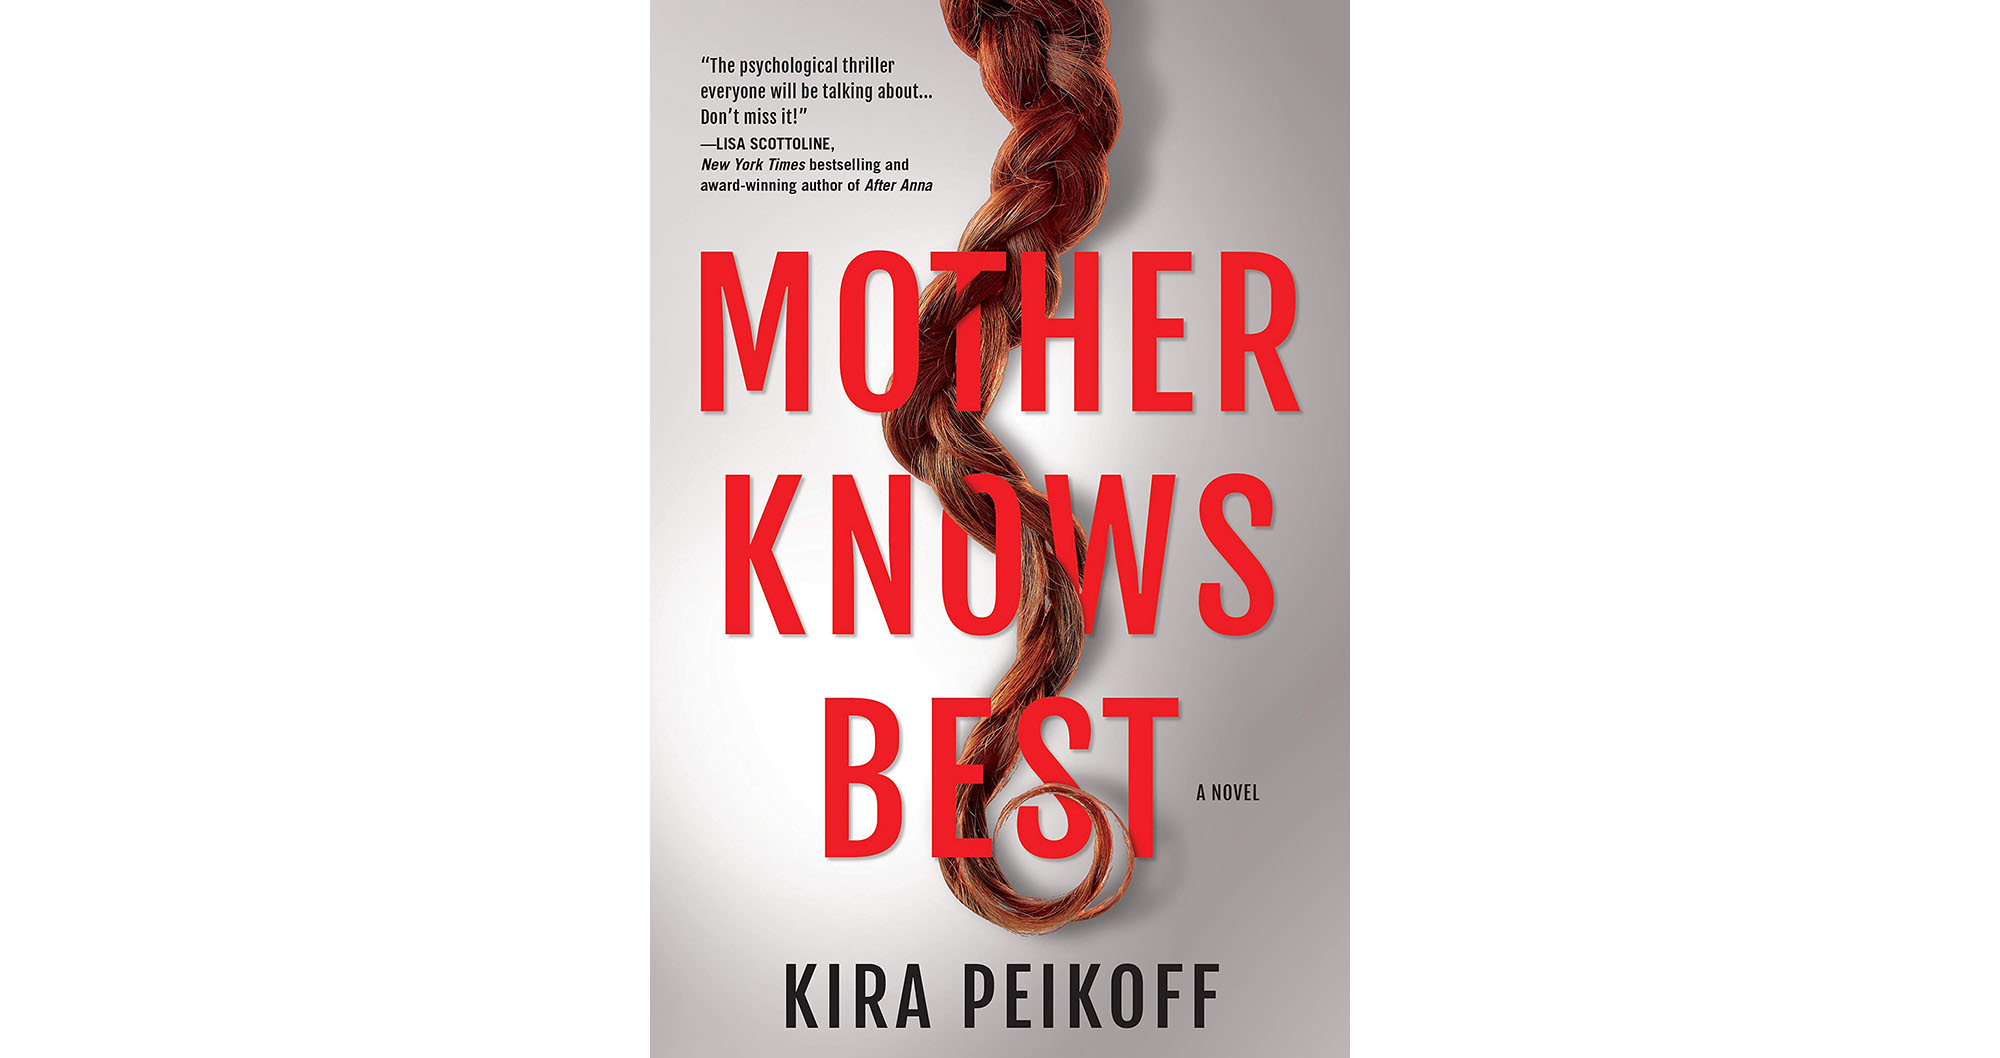 Mother Knows Best, by Kira Peikoff